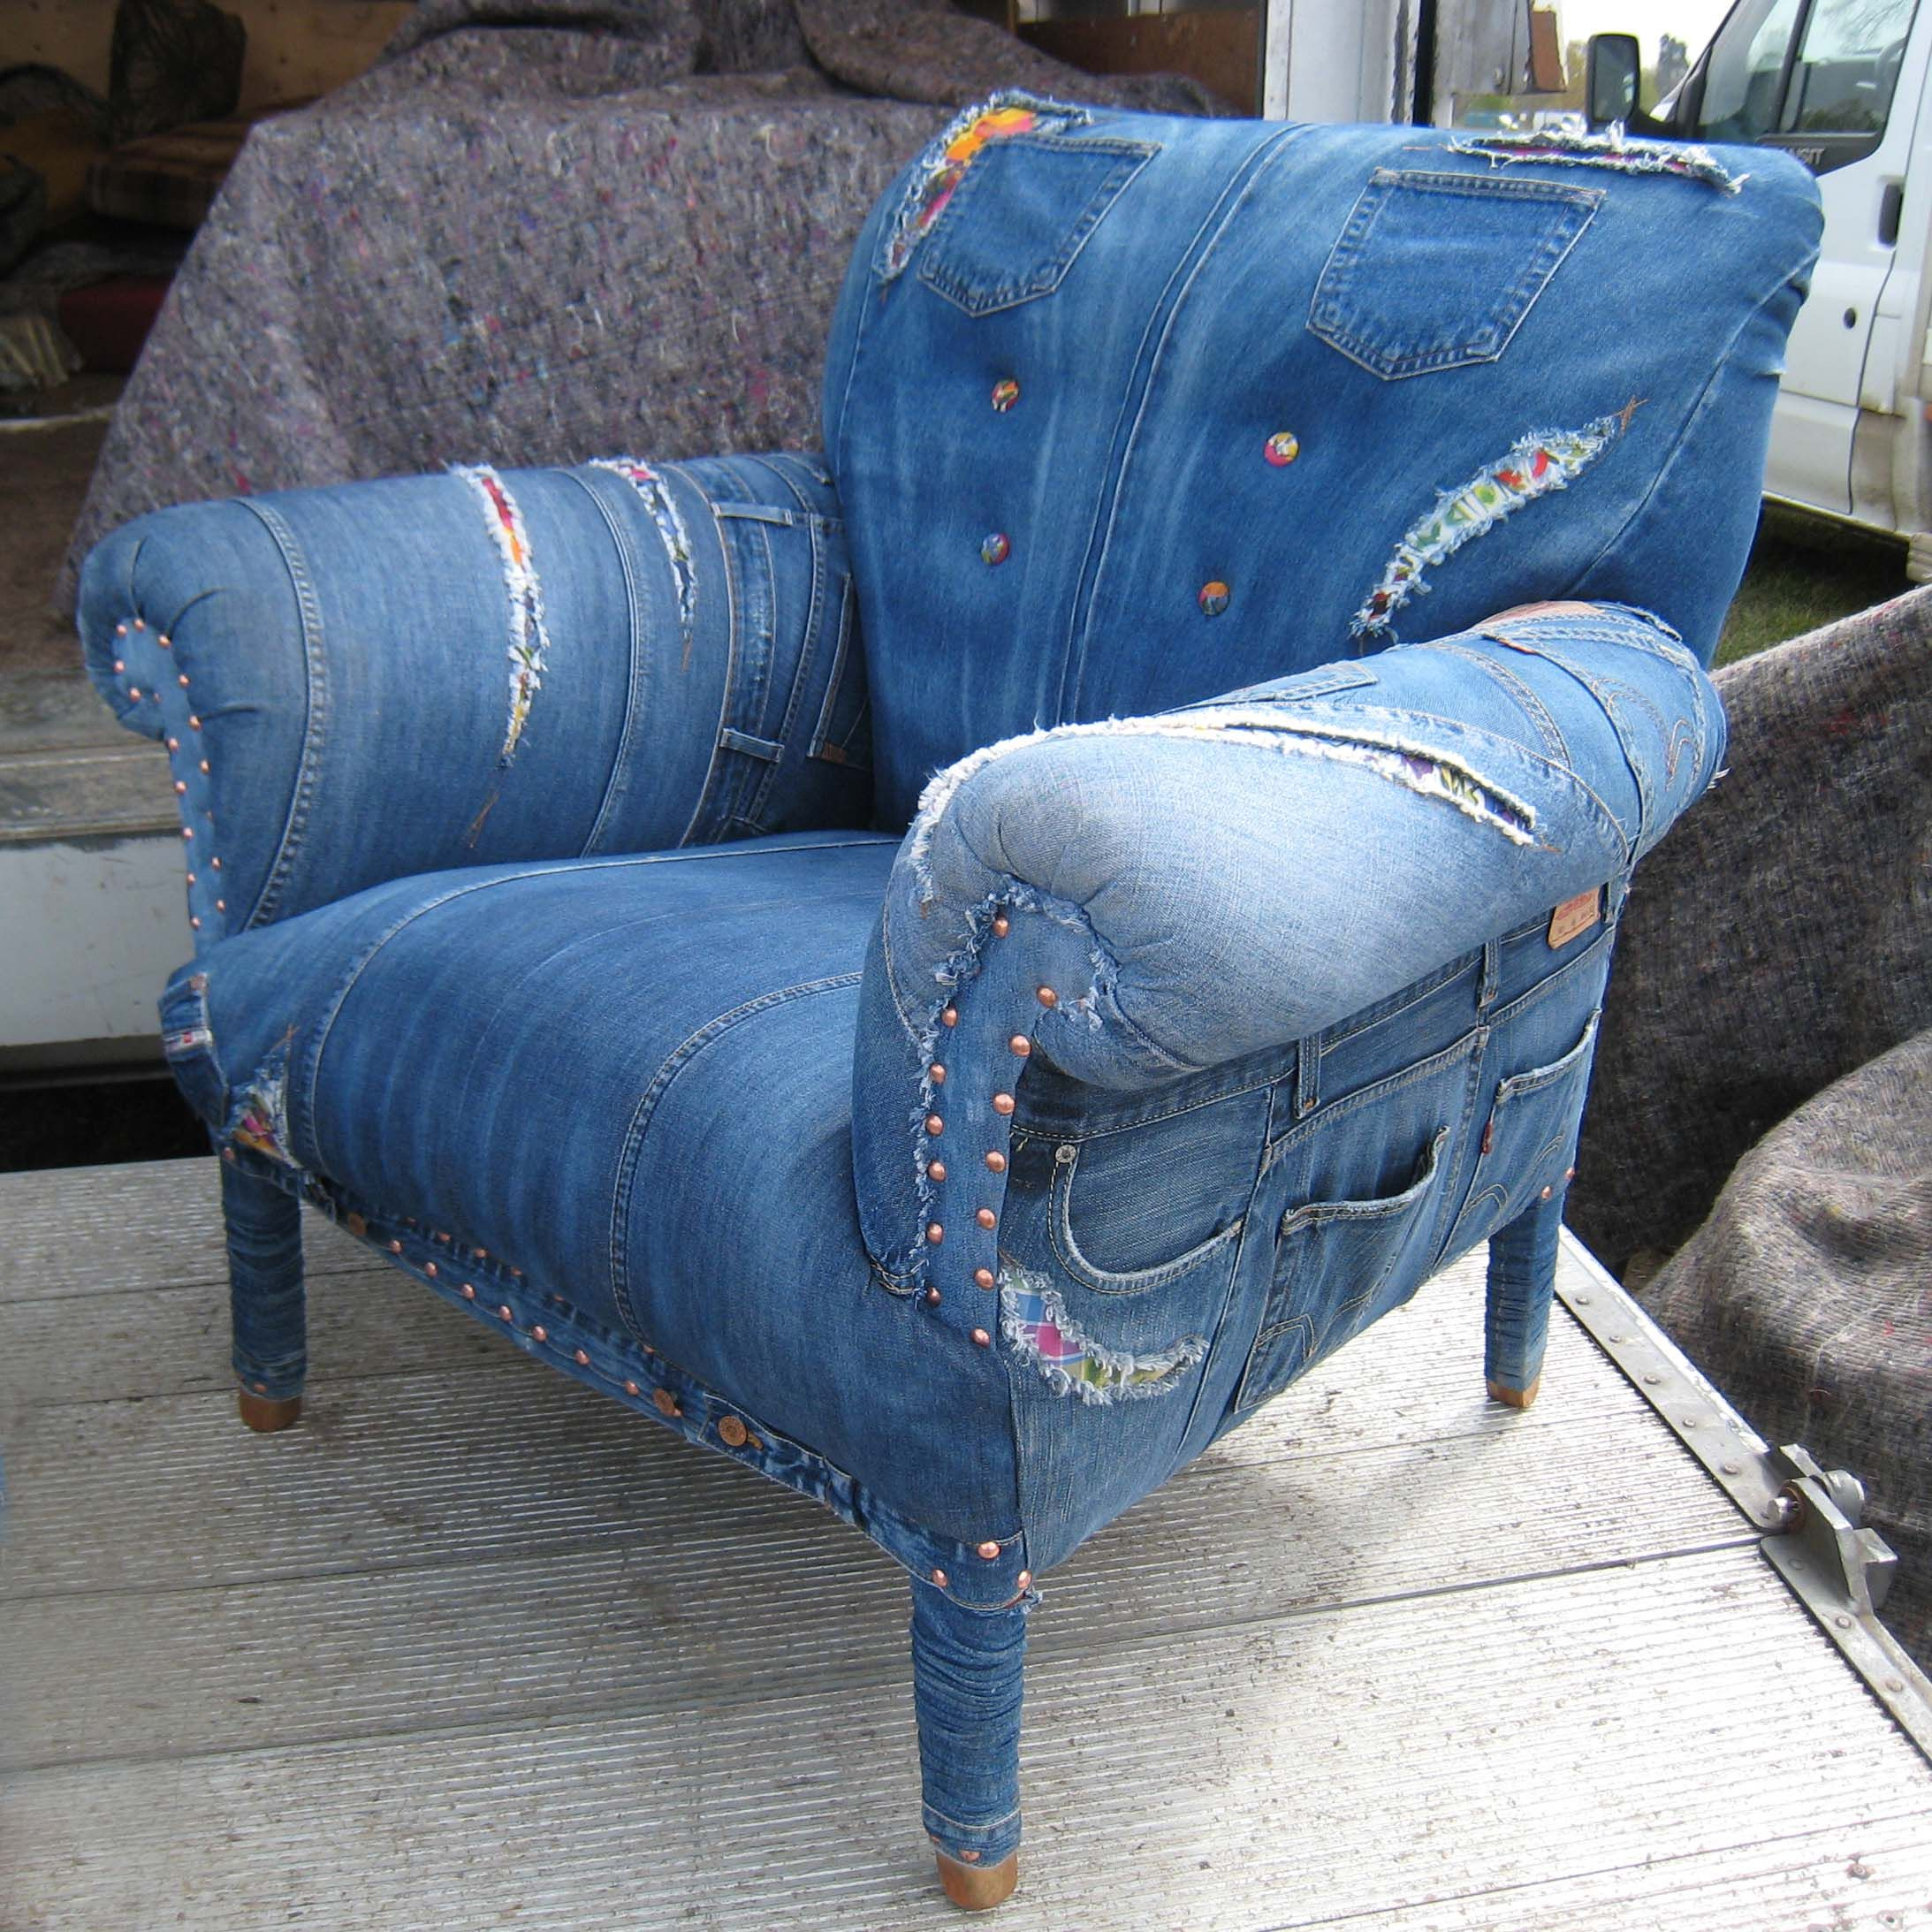 Danubio Vs Boston River Sofascore Leather Lazy Boy Recliner Sofa Recycle London Old Set Molty Foam Modern Living Room Gray Grey Best Sleepers Blue Jean Furniture Love This Chair Upholstered With